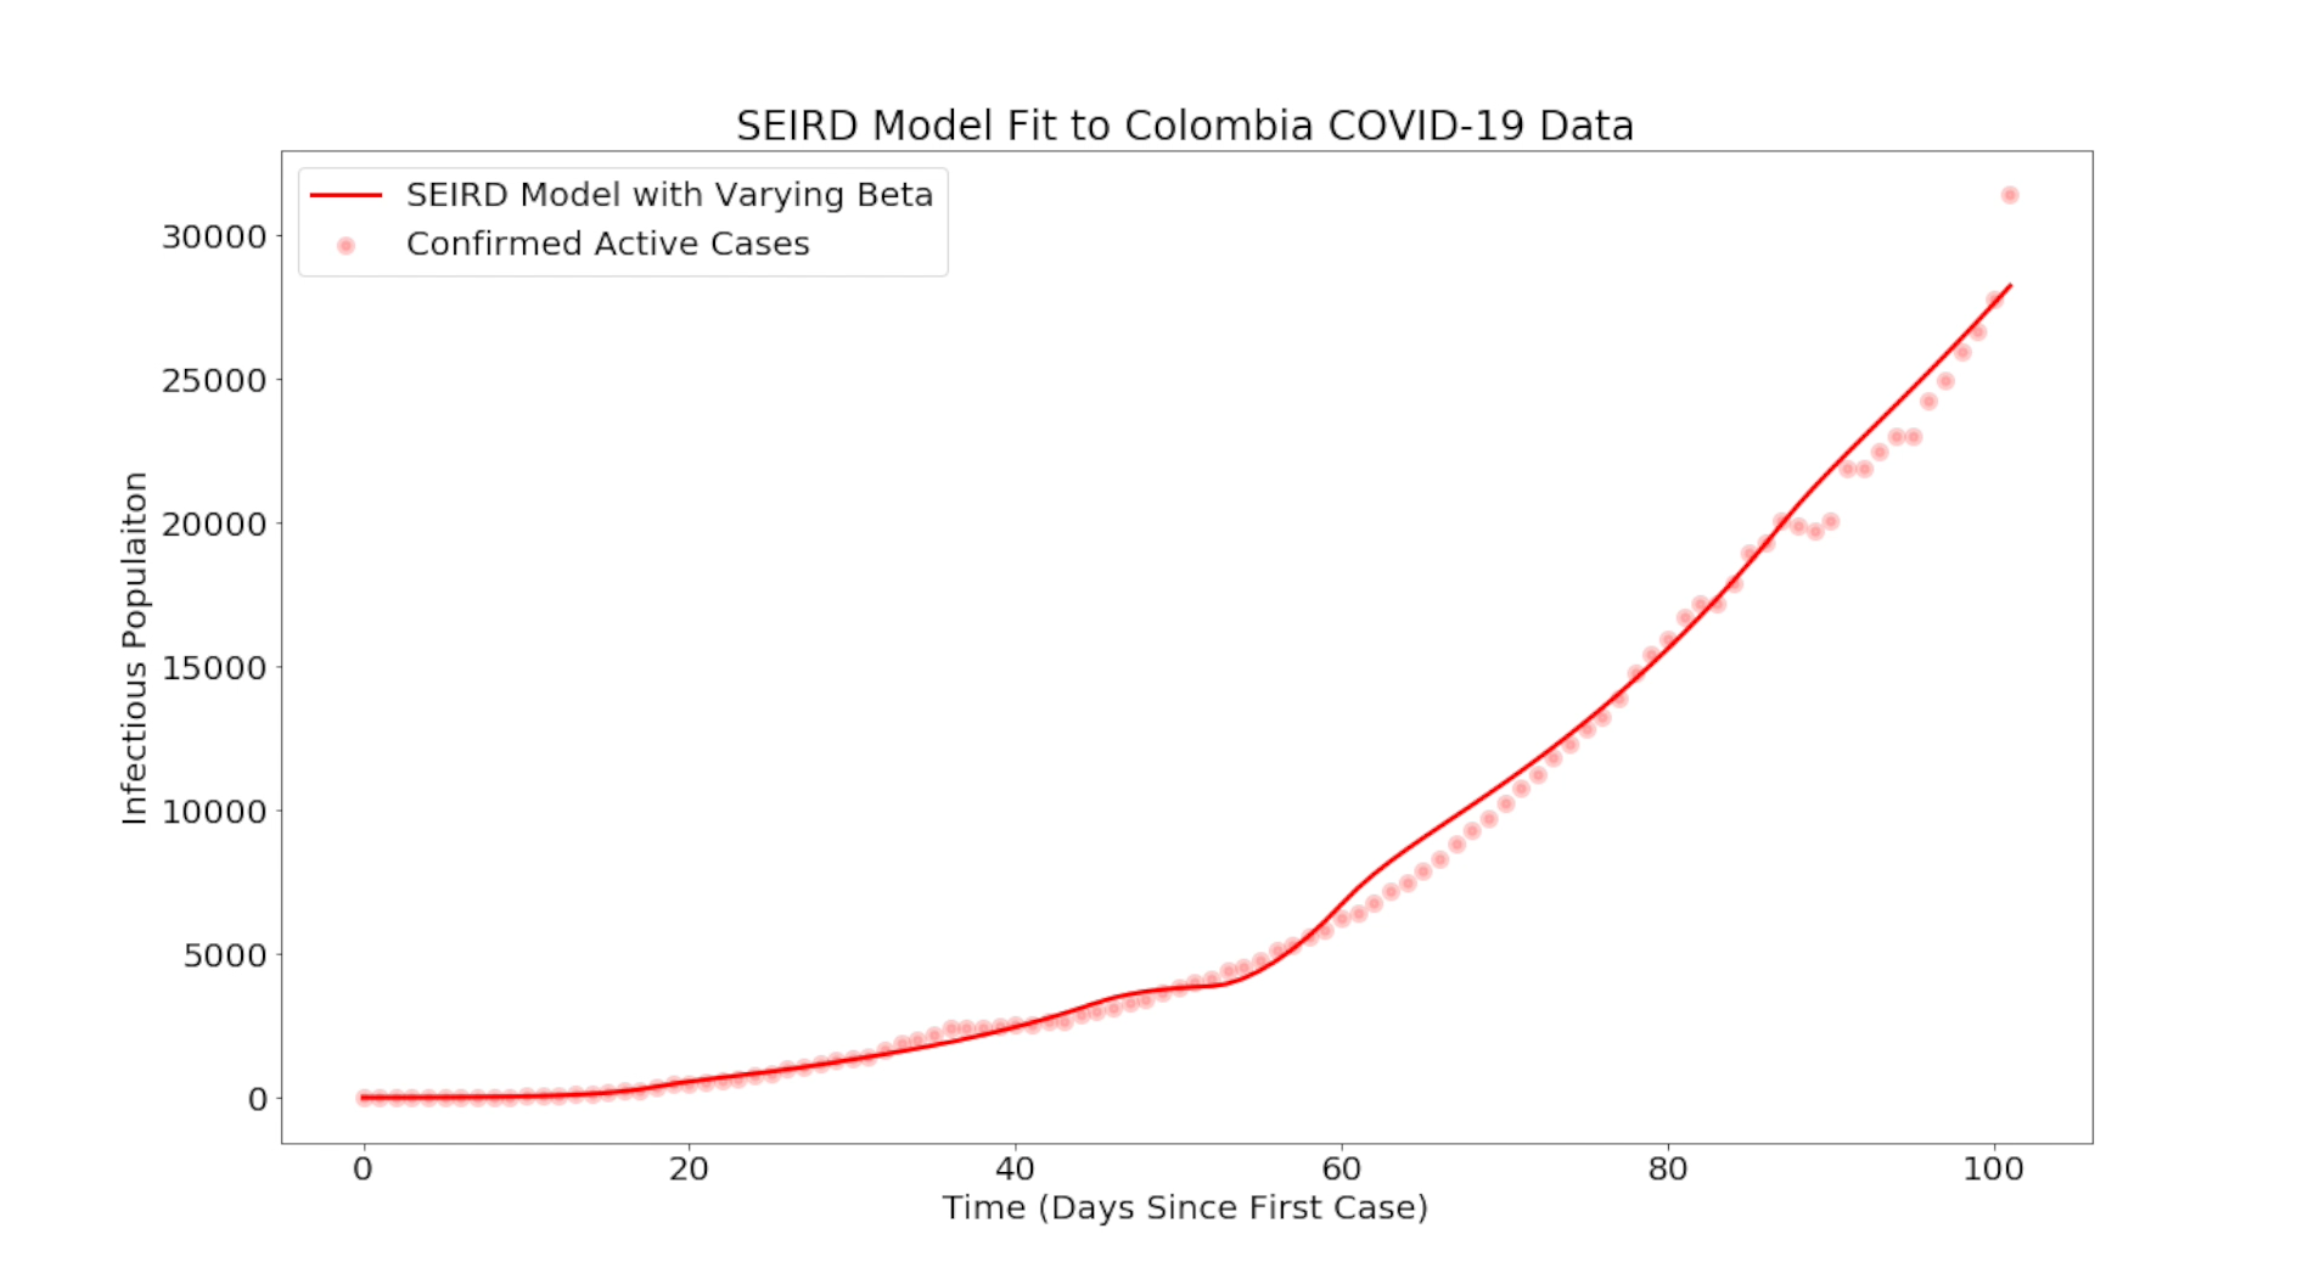 Growth curve of coronavirus cases in Colombia, 2020